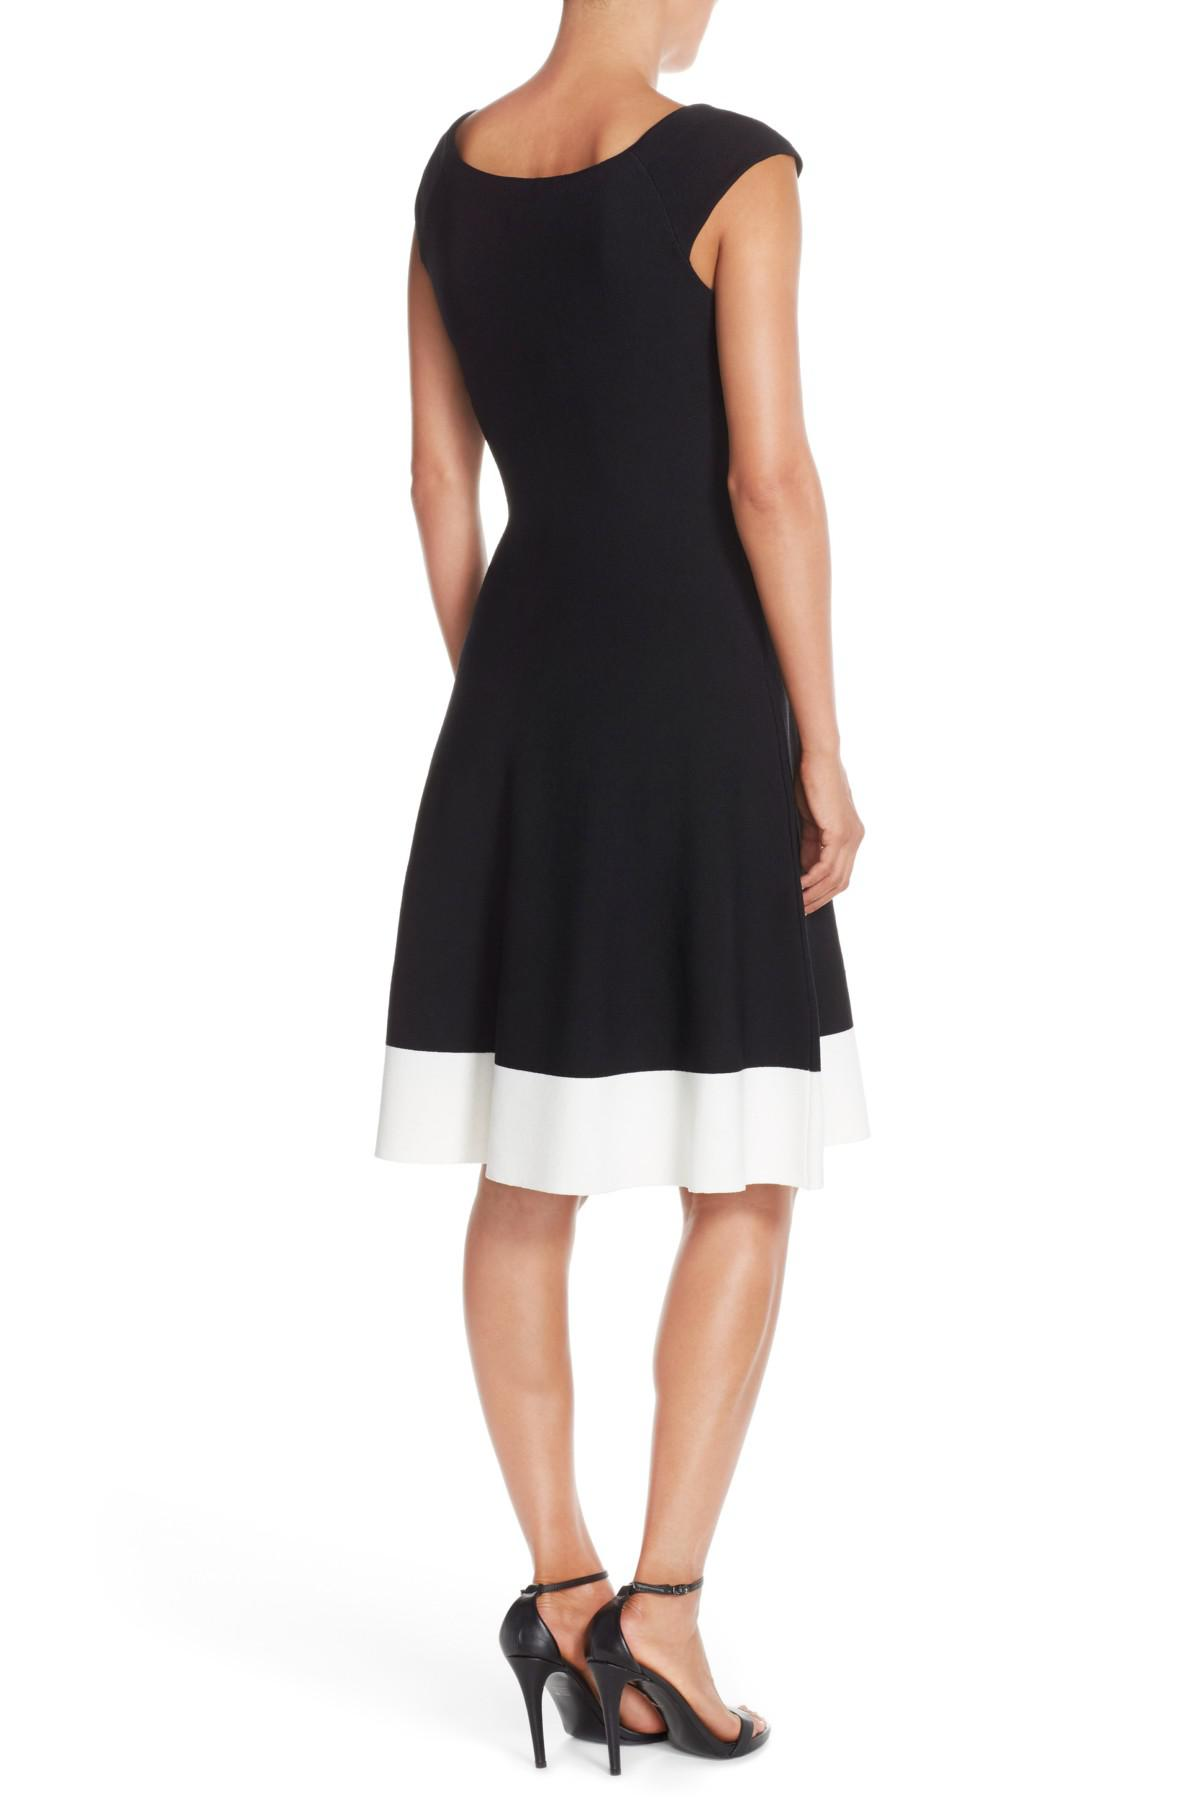 Lyst Eliza J Colorblock Fit Flare Sweater Dress In Black